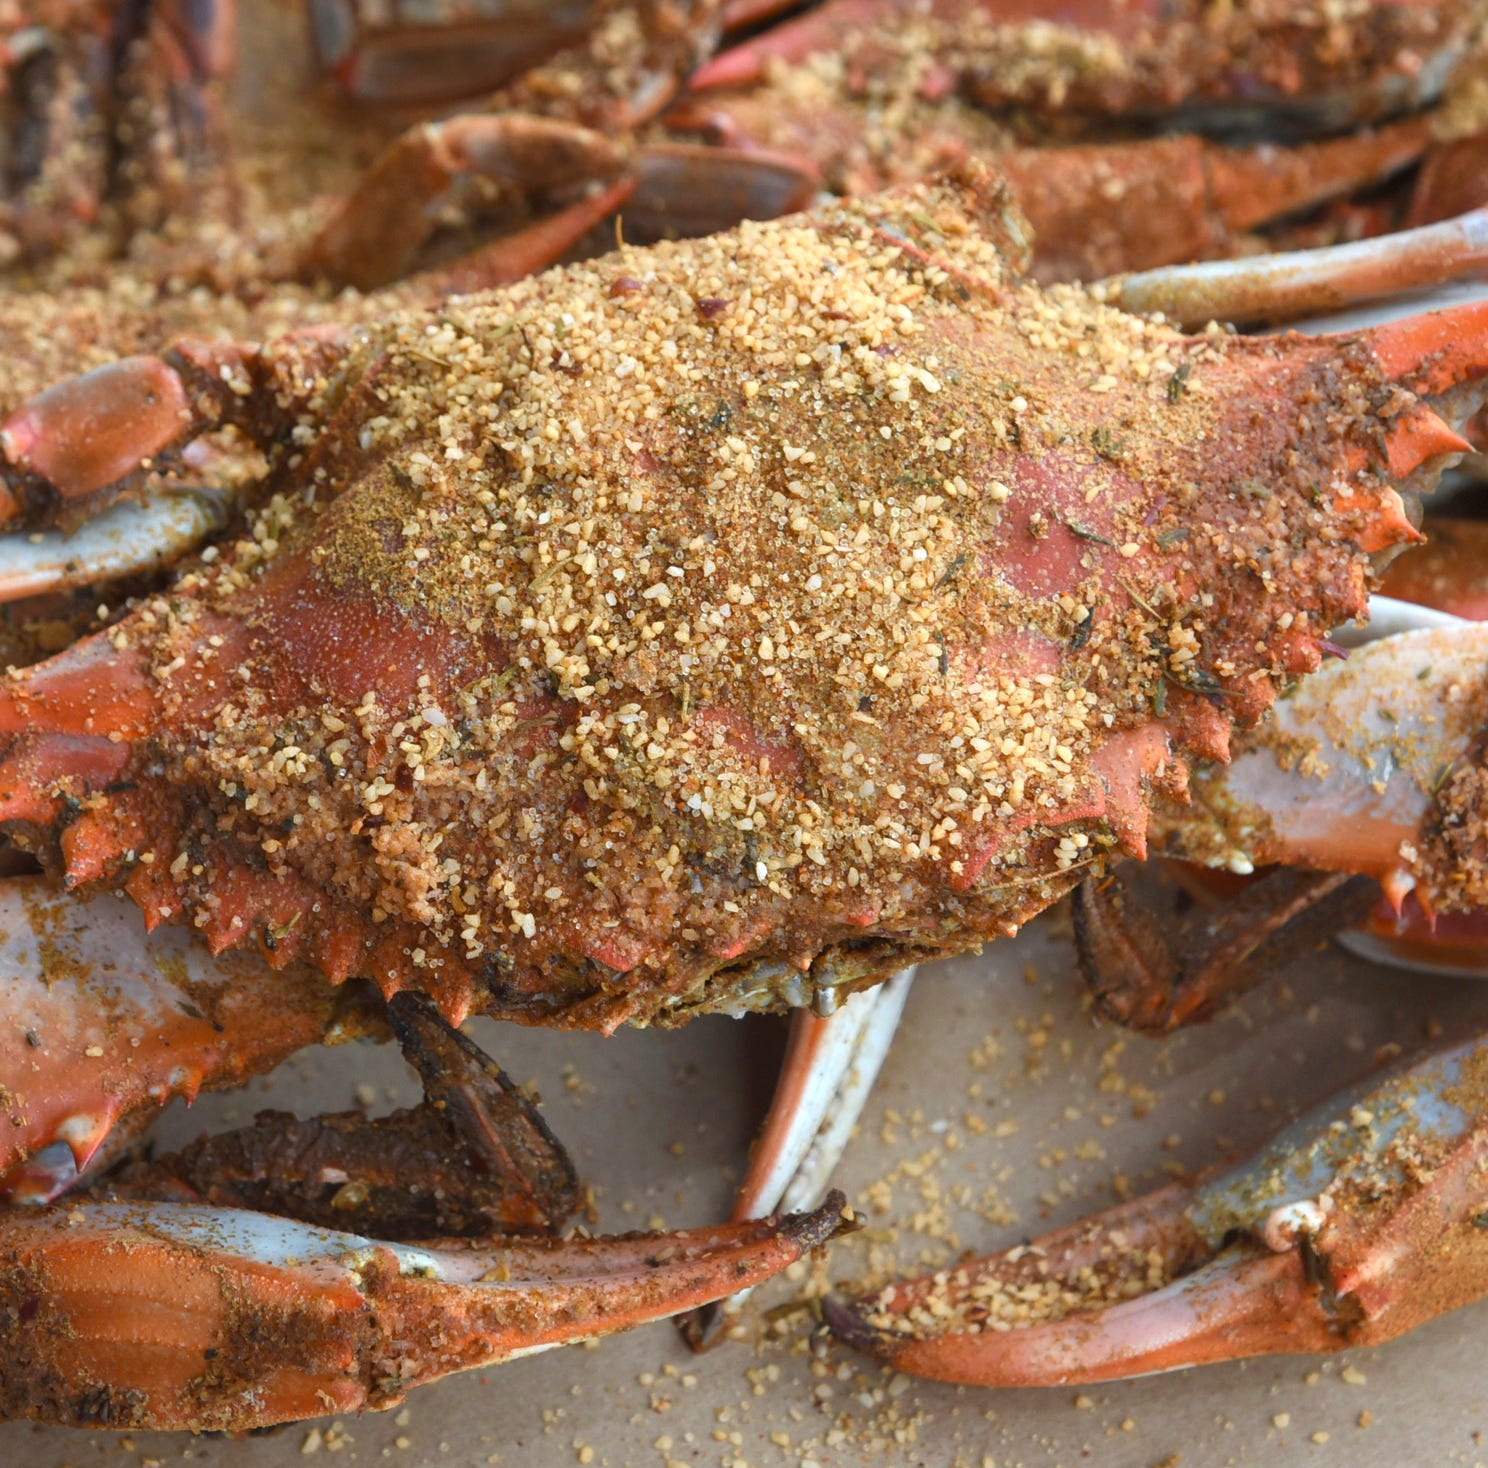 Meet the seasoning most crab houses use. It's not Old Bay